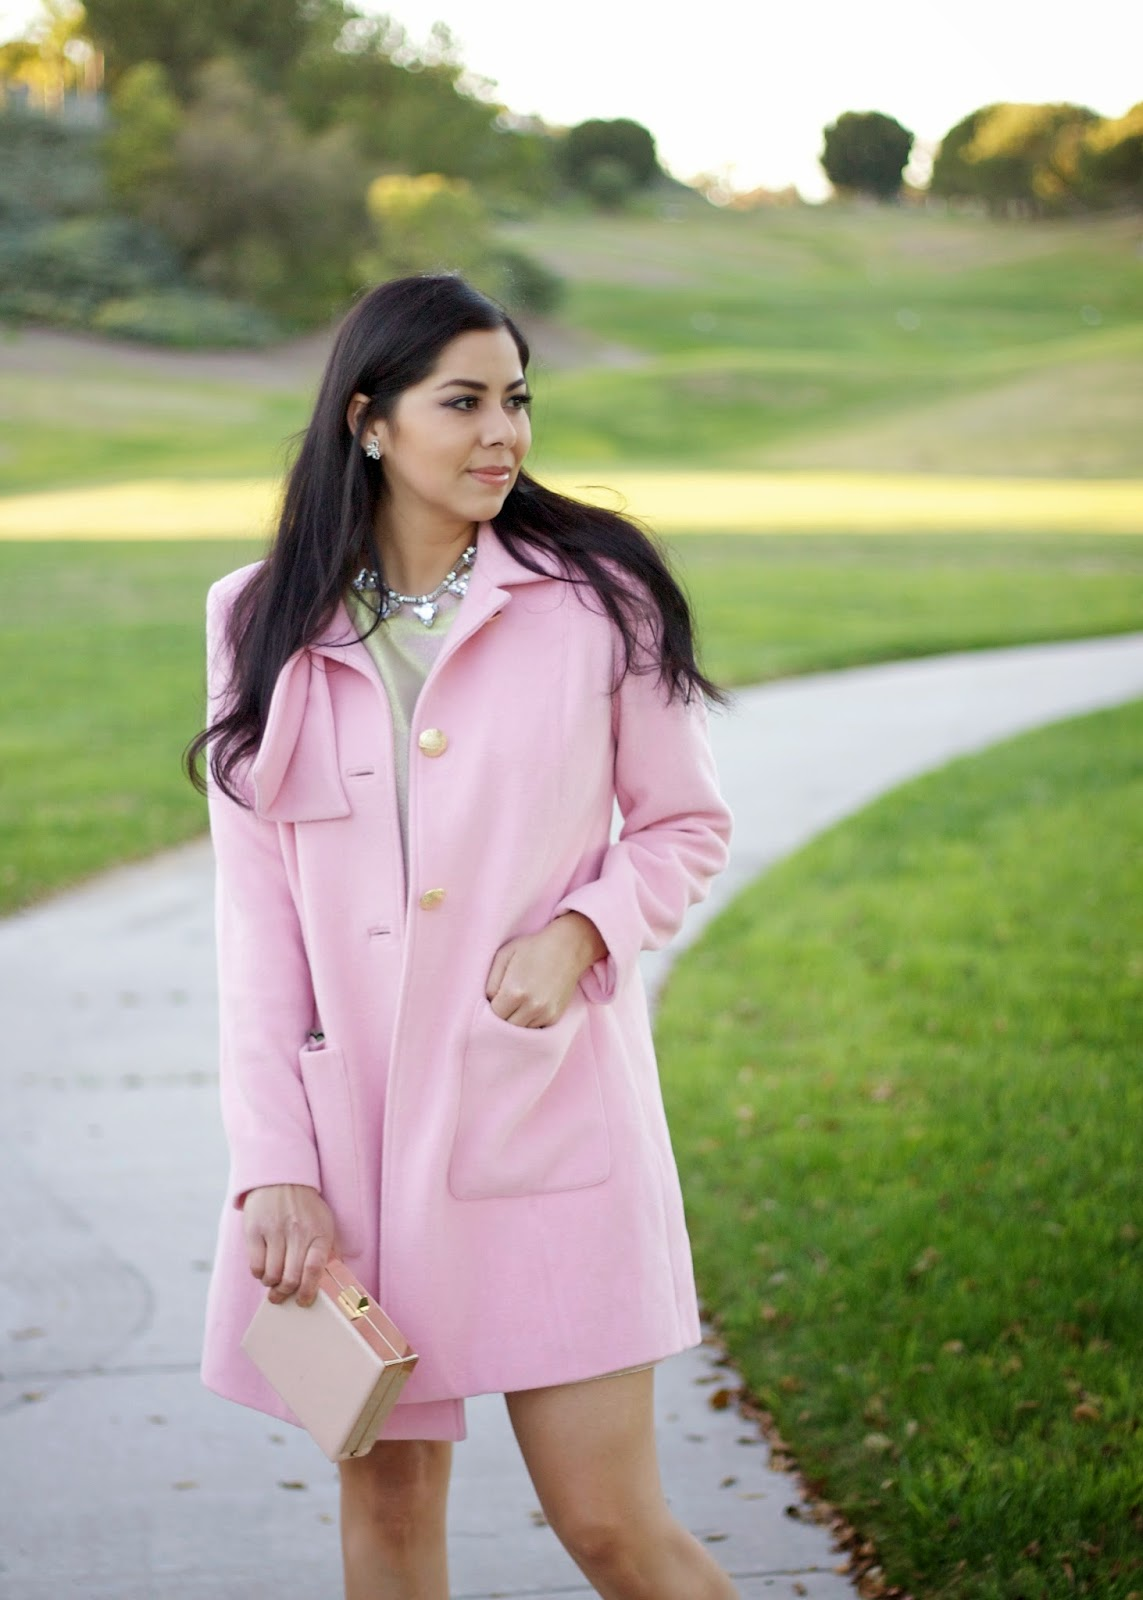 Pink Iridescence Lil Bits Of Chic By Paulina Mo San Diego Based Fashion Lifestyle Blogger